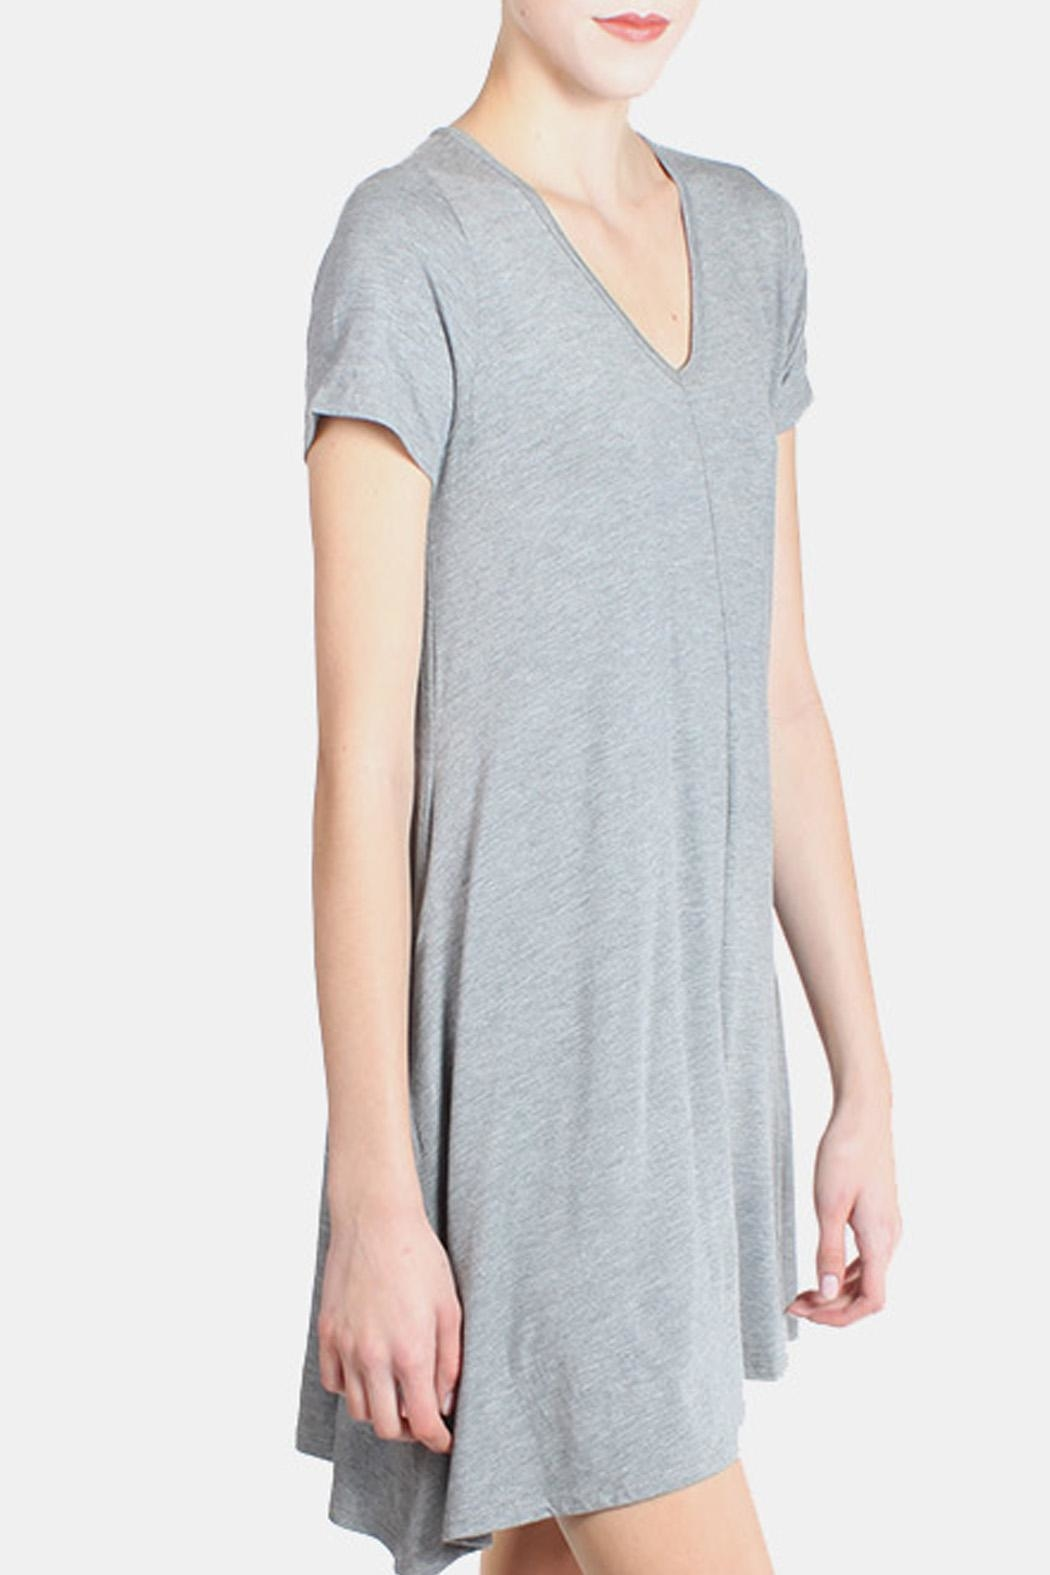 Chris & Carol Grey Essential Jersey Dress - Side Cropped Image